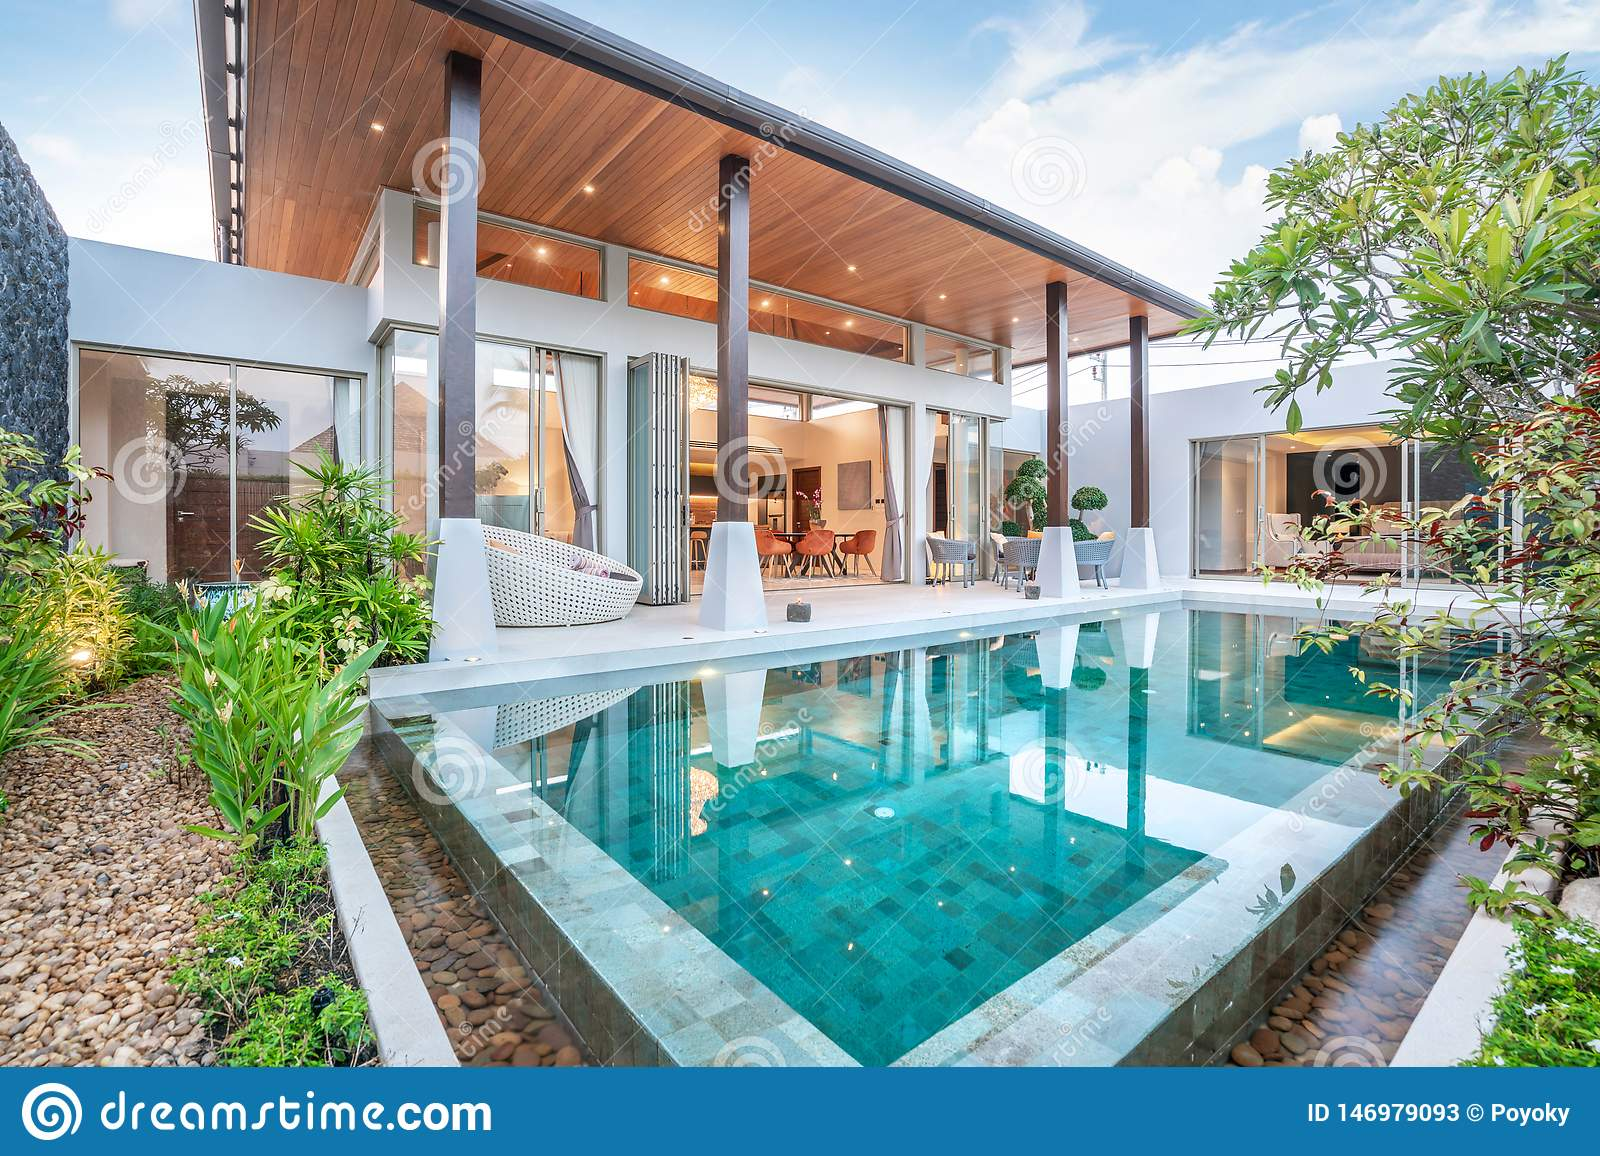 Home Or House Building Exterior And Interior Design Showing Tropical Pool Villa With Green Garden Stock Image Image Of Home Exterior 146979093